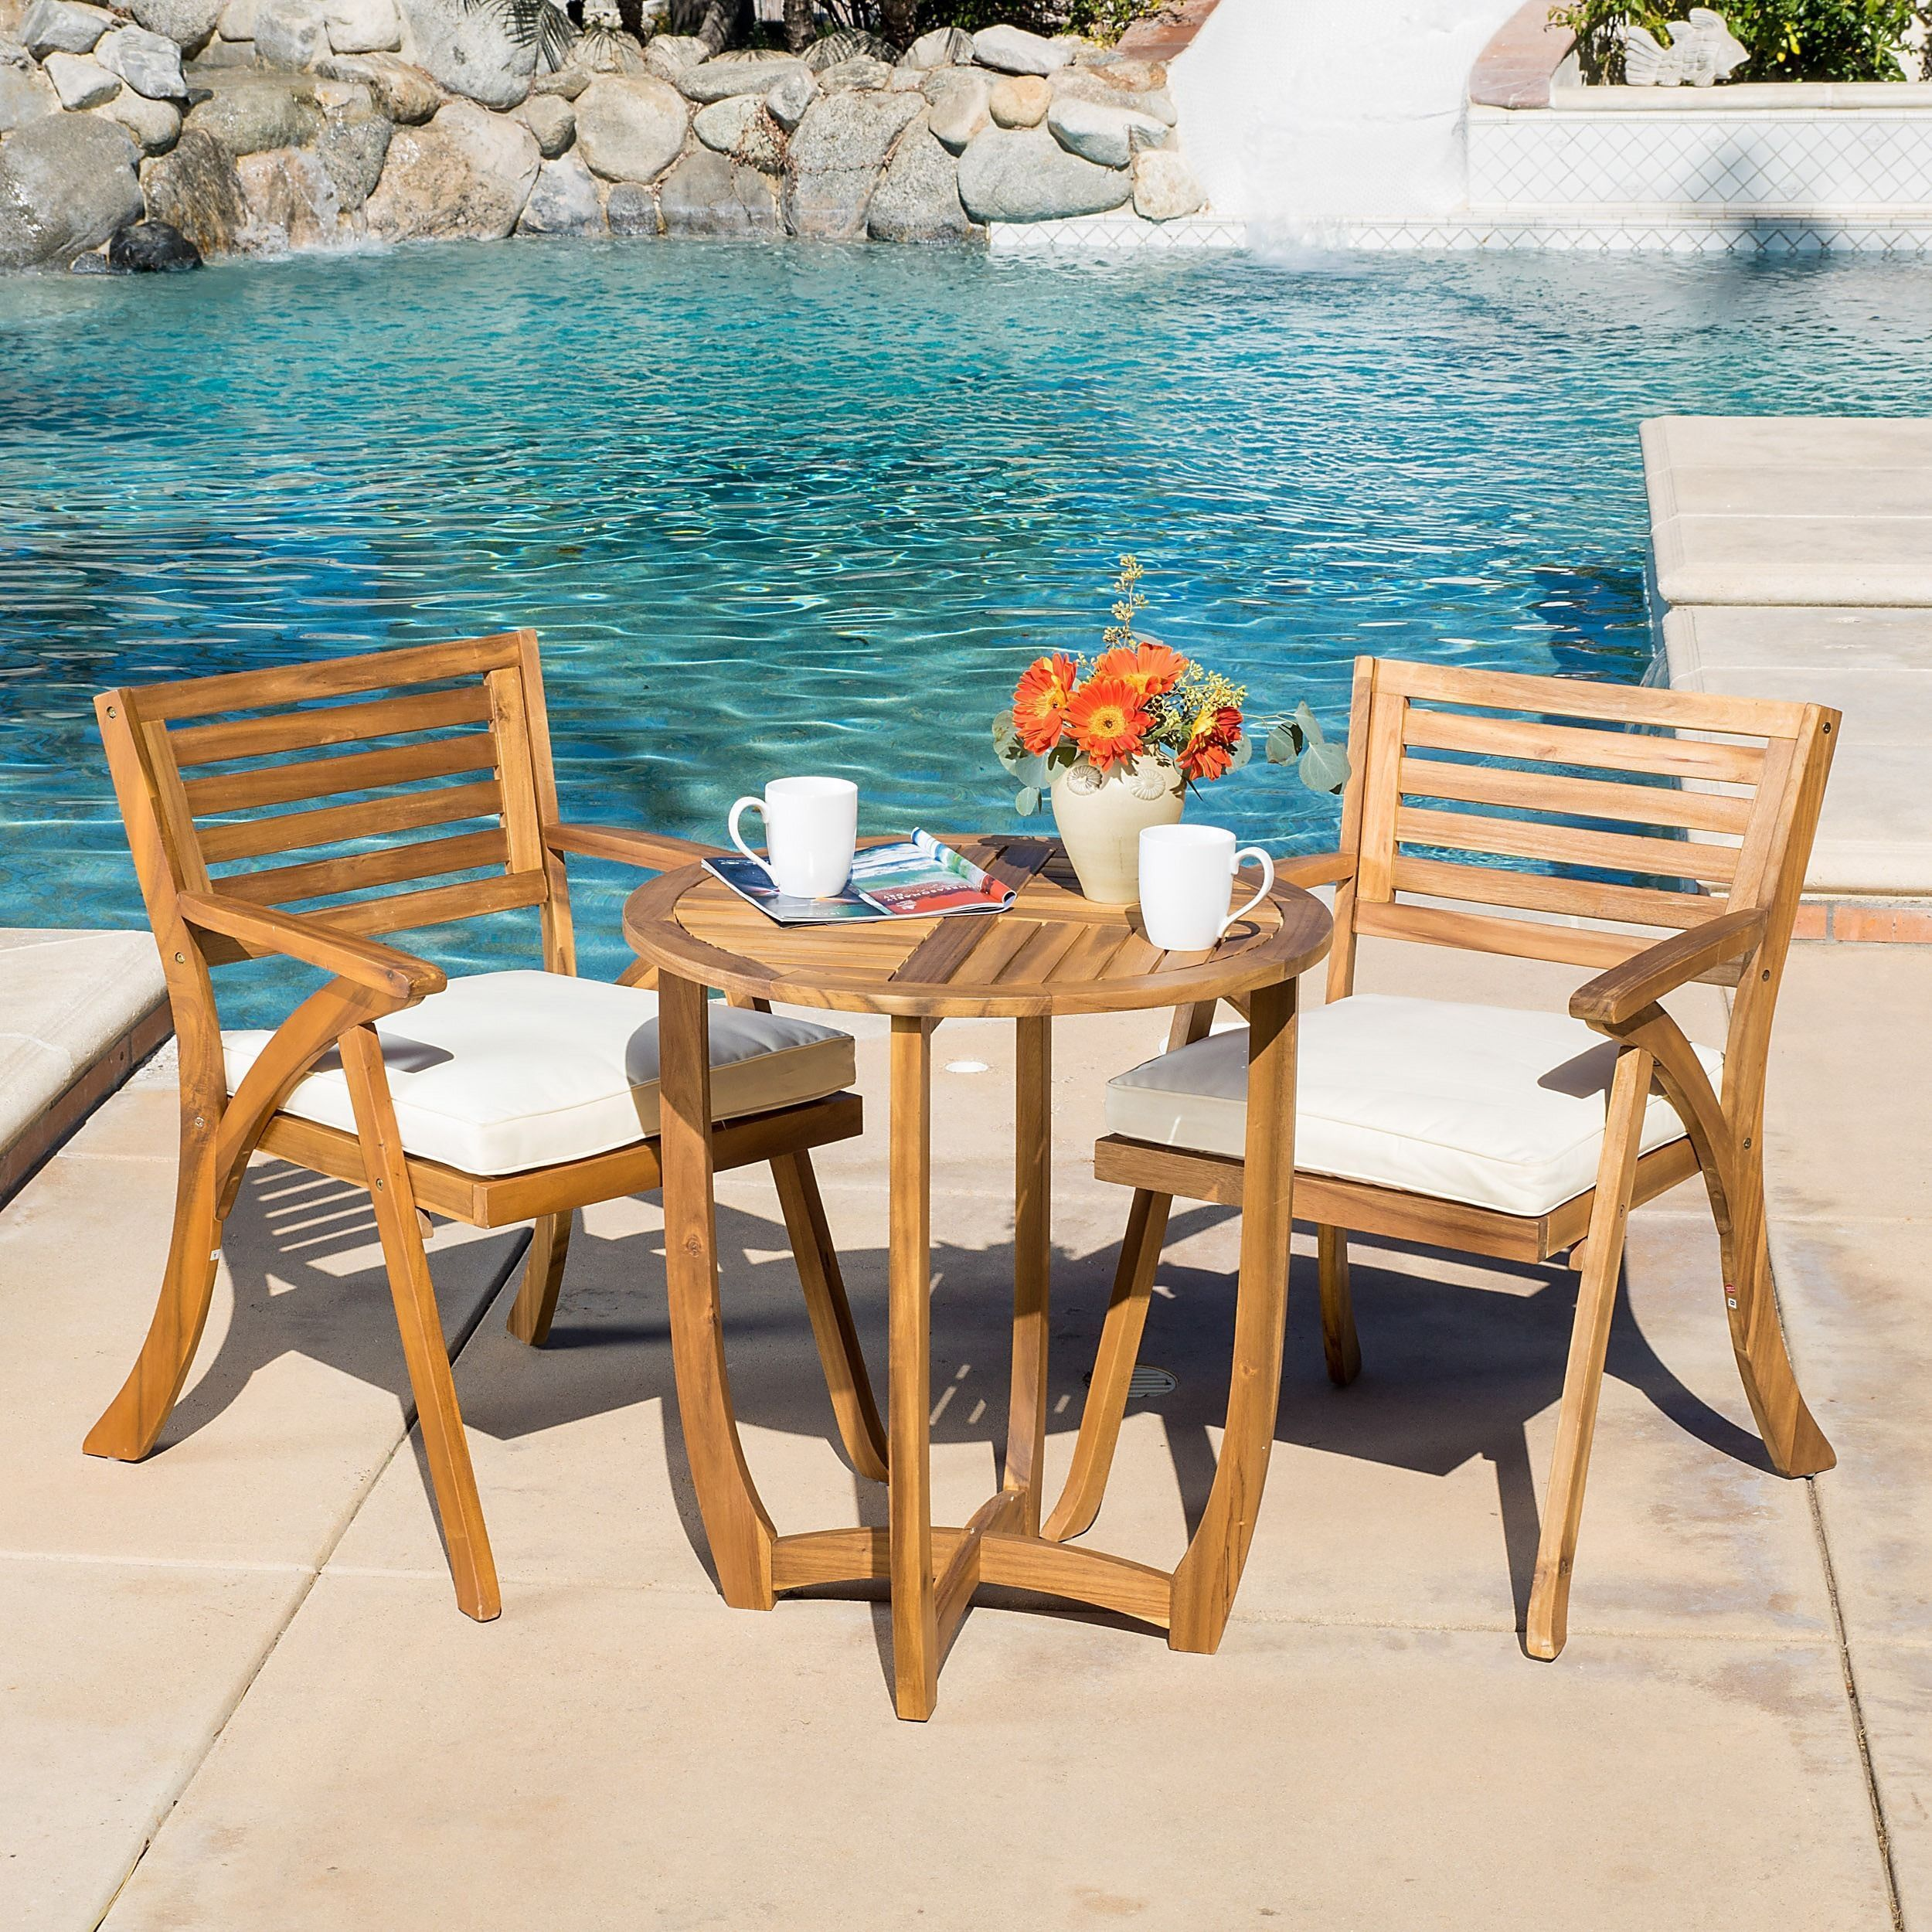 Best outdoor furniture for small patios and balconies the guide 2018